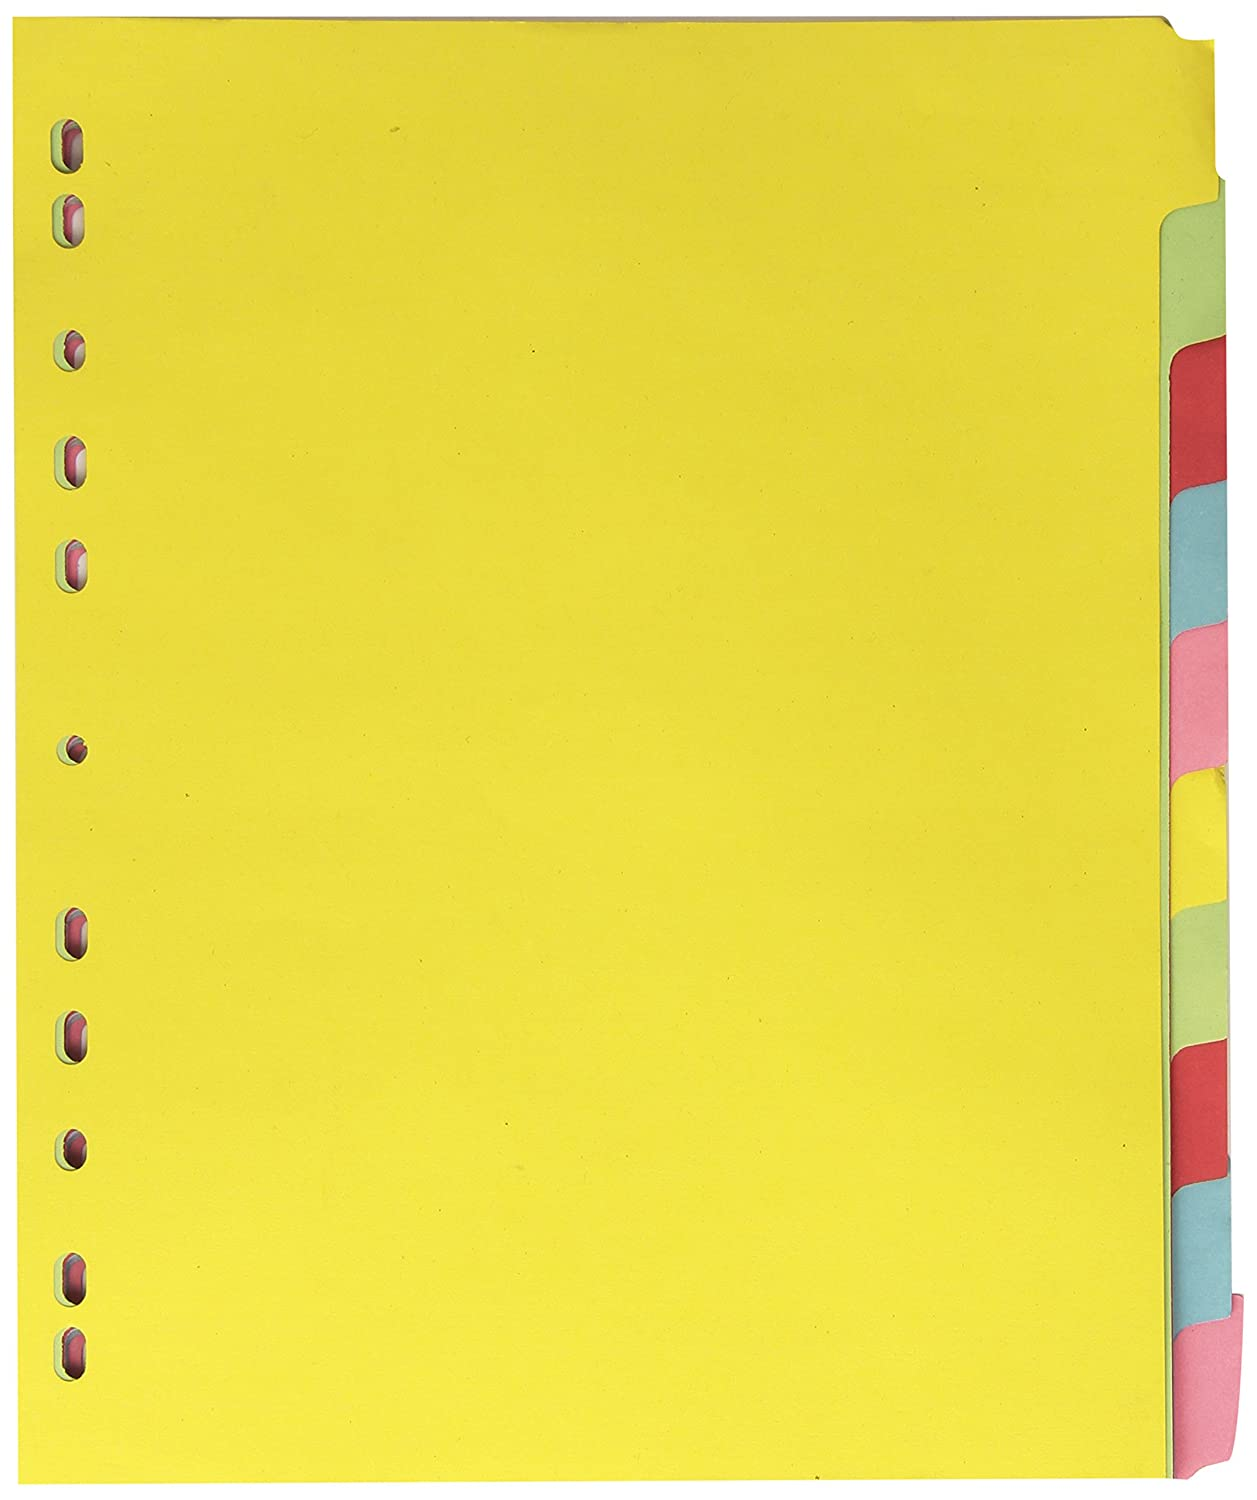 Elba A4 Extra-Wide 10-Part Card Divider - Assorted (3)